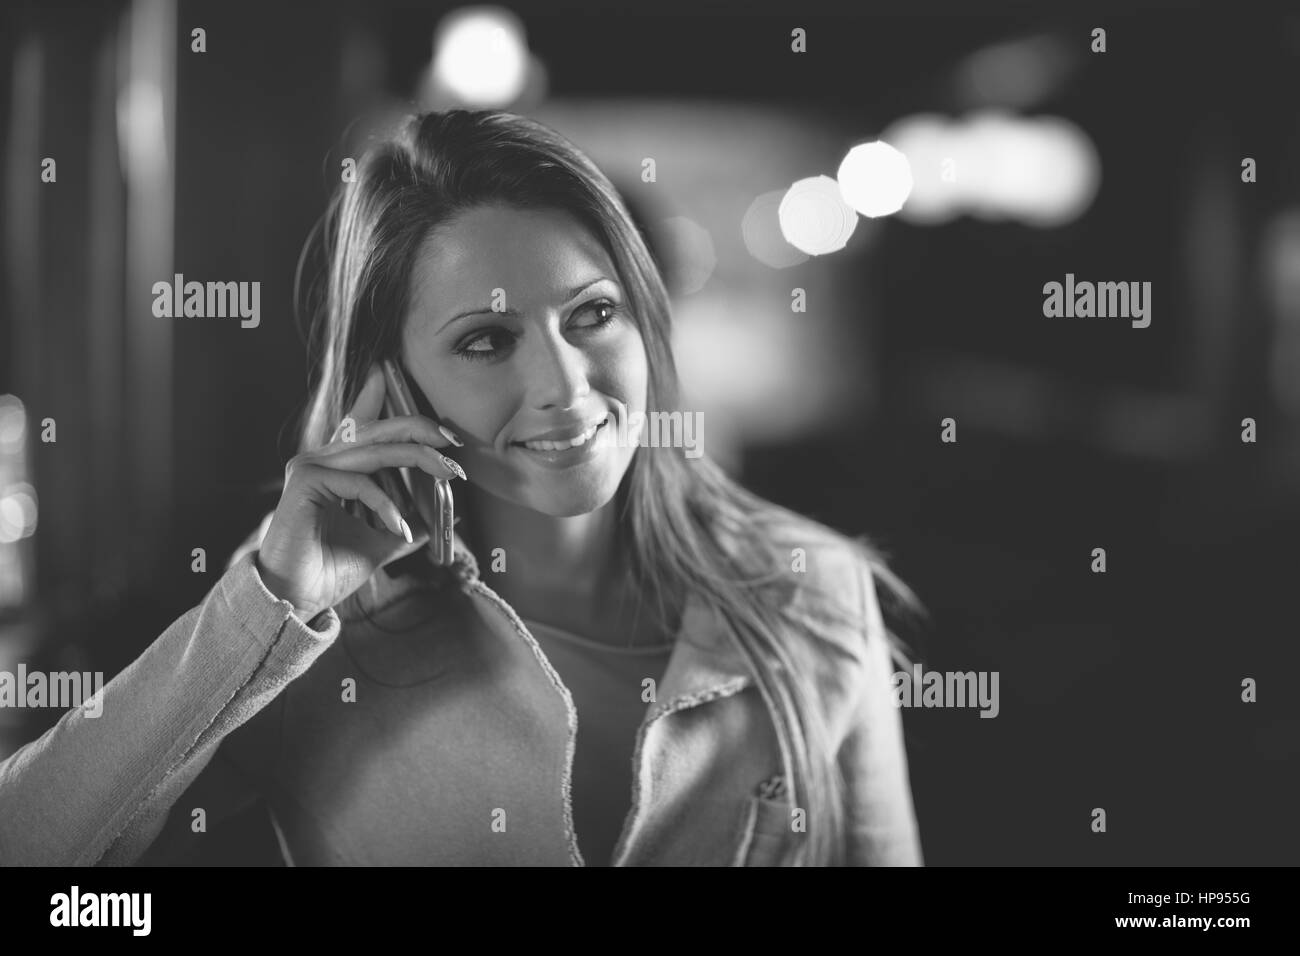 Smiling young woman at the bar having a phone call with her mobile phone - Stock Image